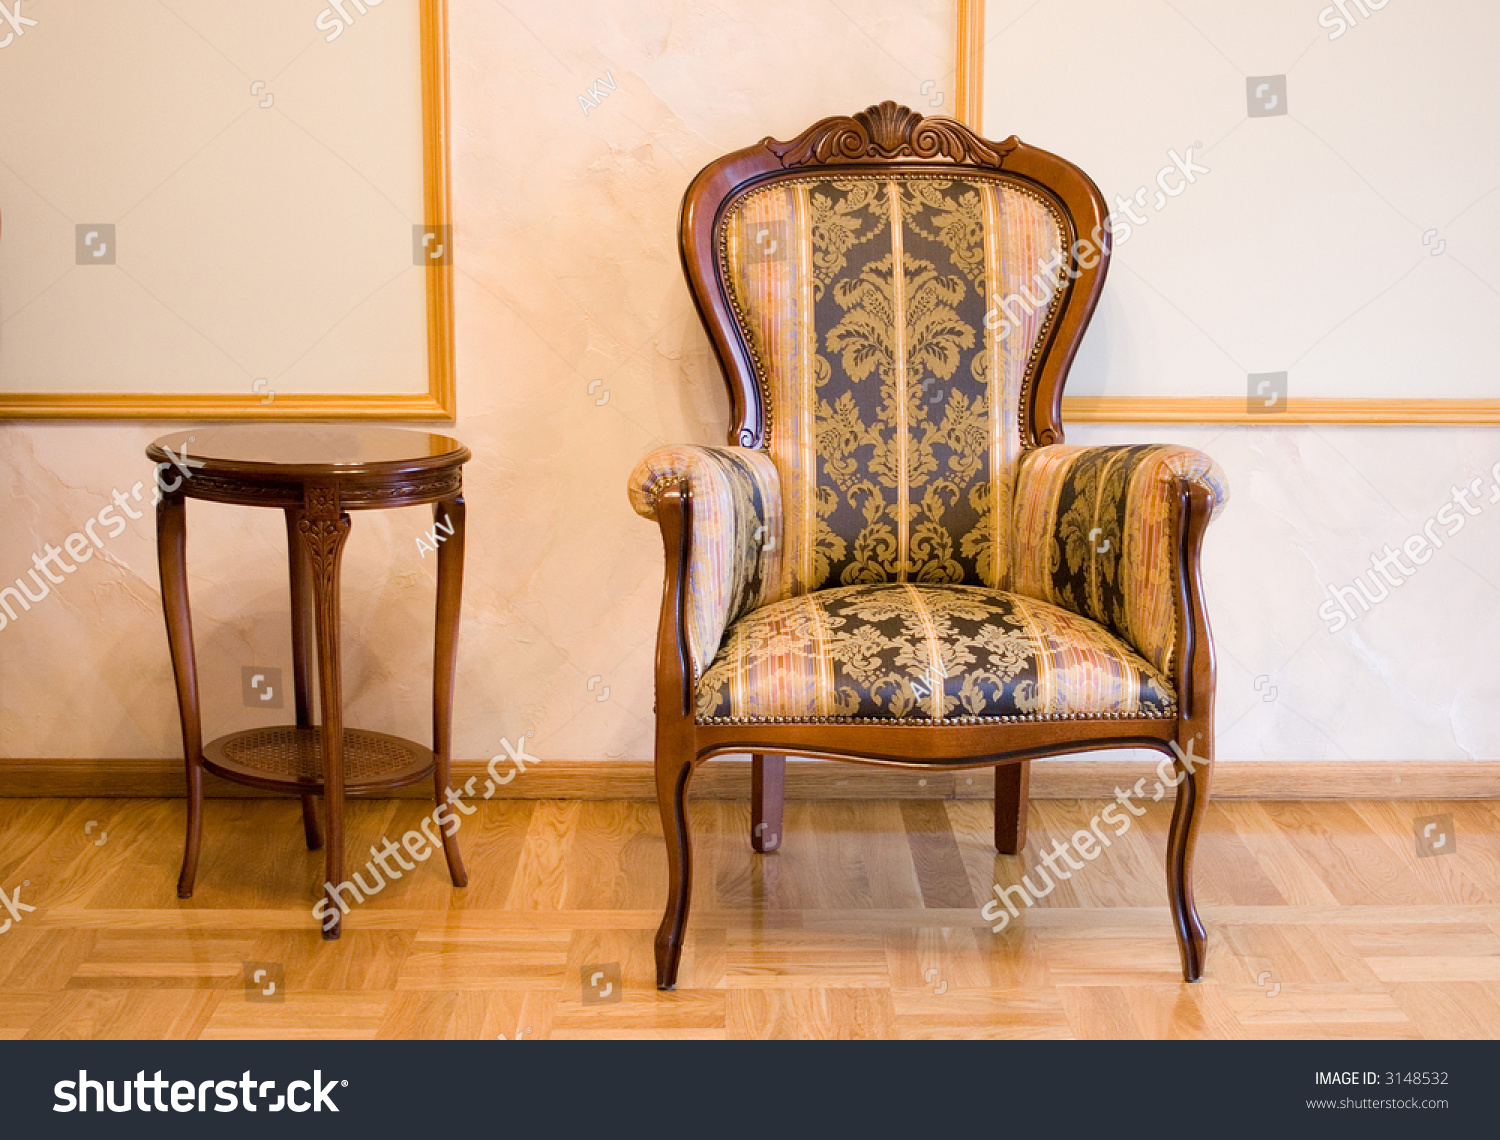 Old-Fashioned Furniture Stock Photo 3148532 : Shutterstock